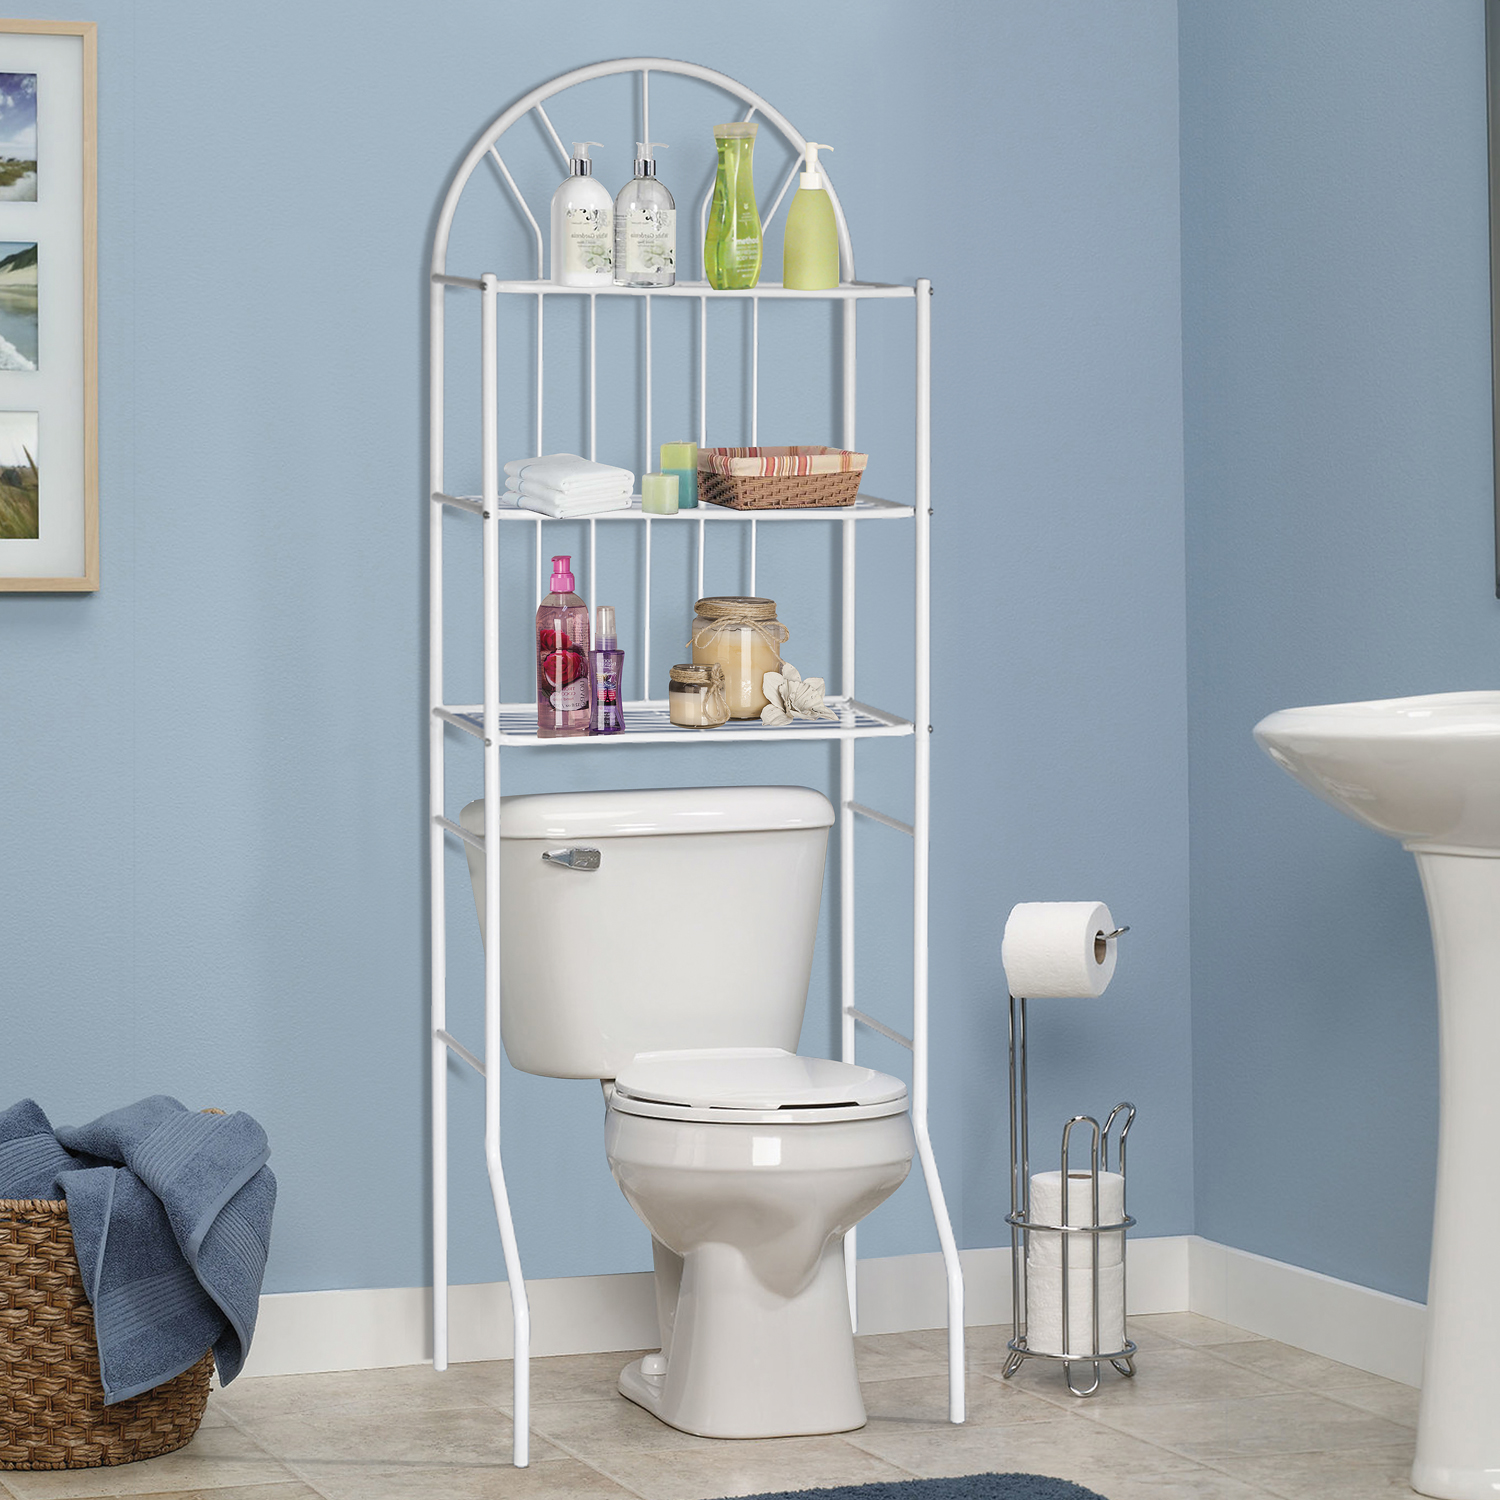 Home Source 3 Shelf Bathroom Rack in White - Walmart.com